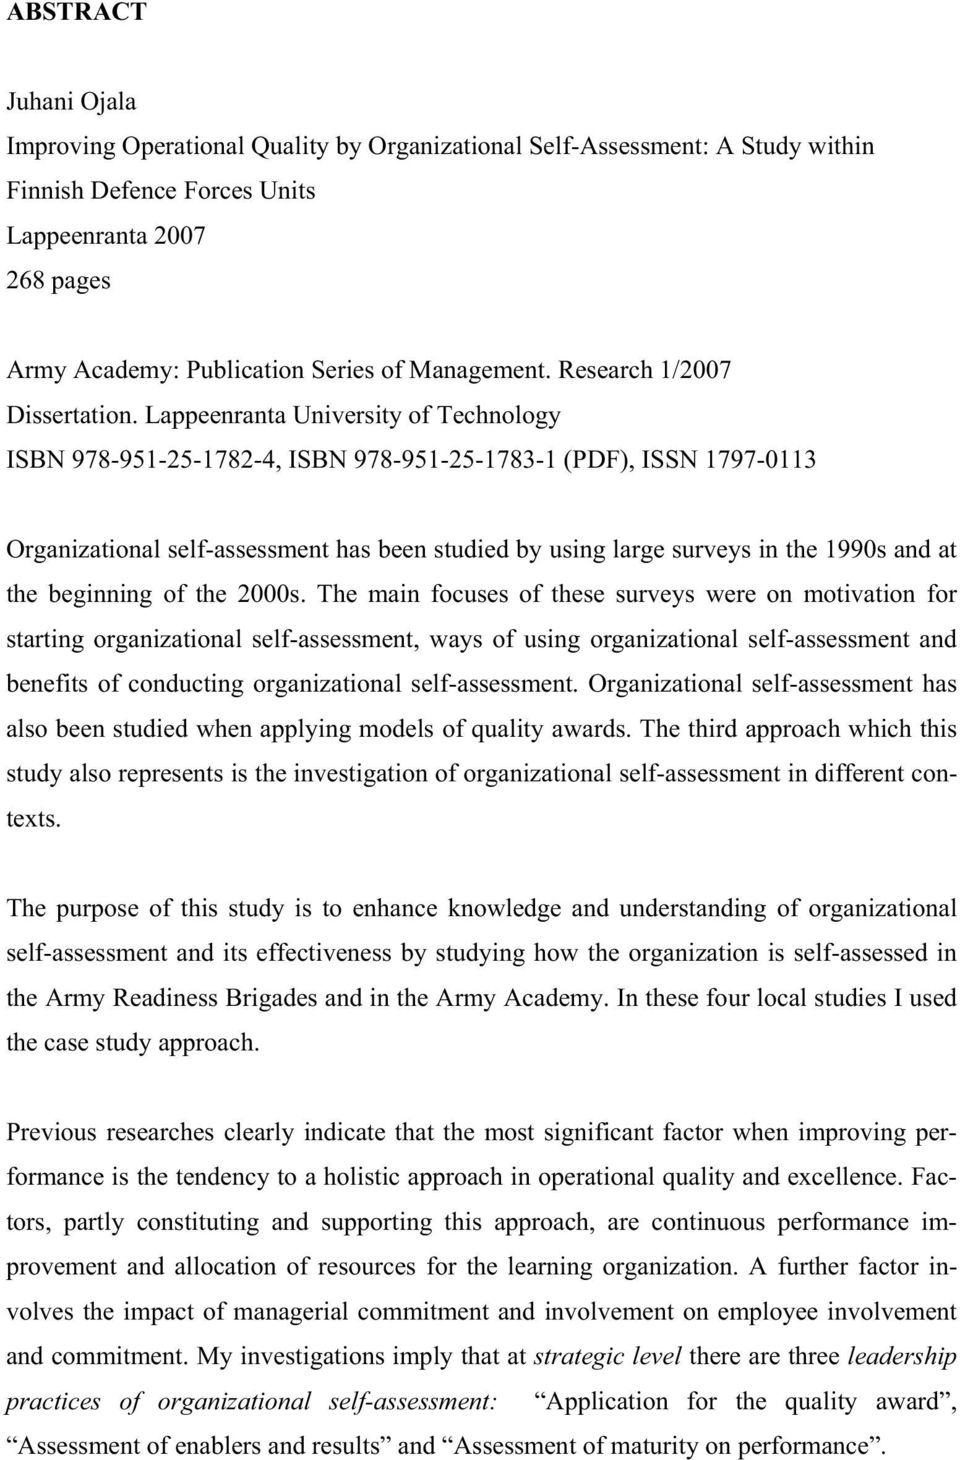 Lappeenranta University of Technology ISBN 978-951-25-1782-4, ISBN 978-951-25-1783-1 (PDF), ISSN 1797-0113 Organizational self-assessment has been studied by using large surveys in the 1990s and at